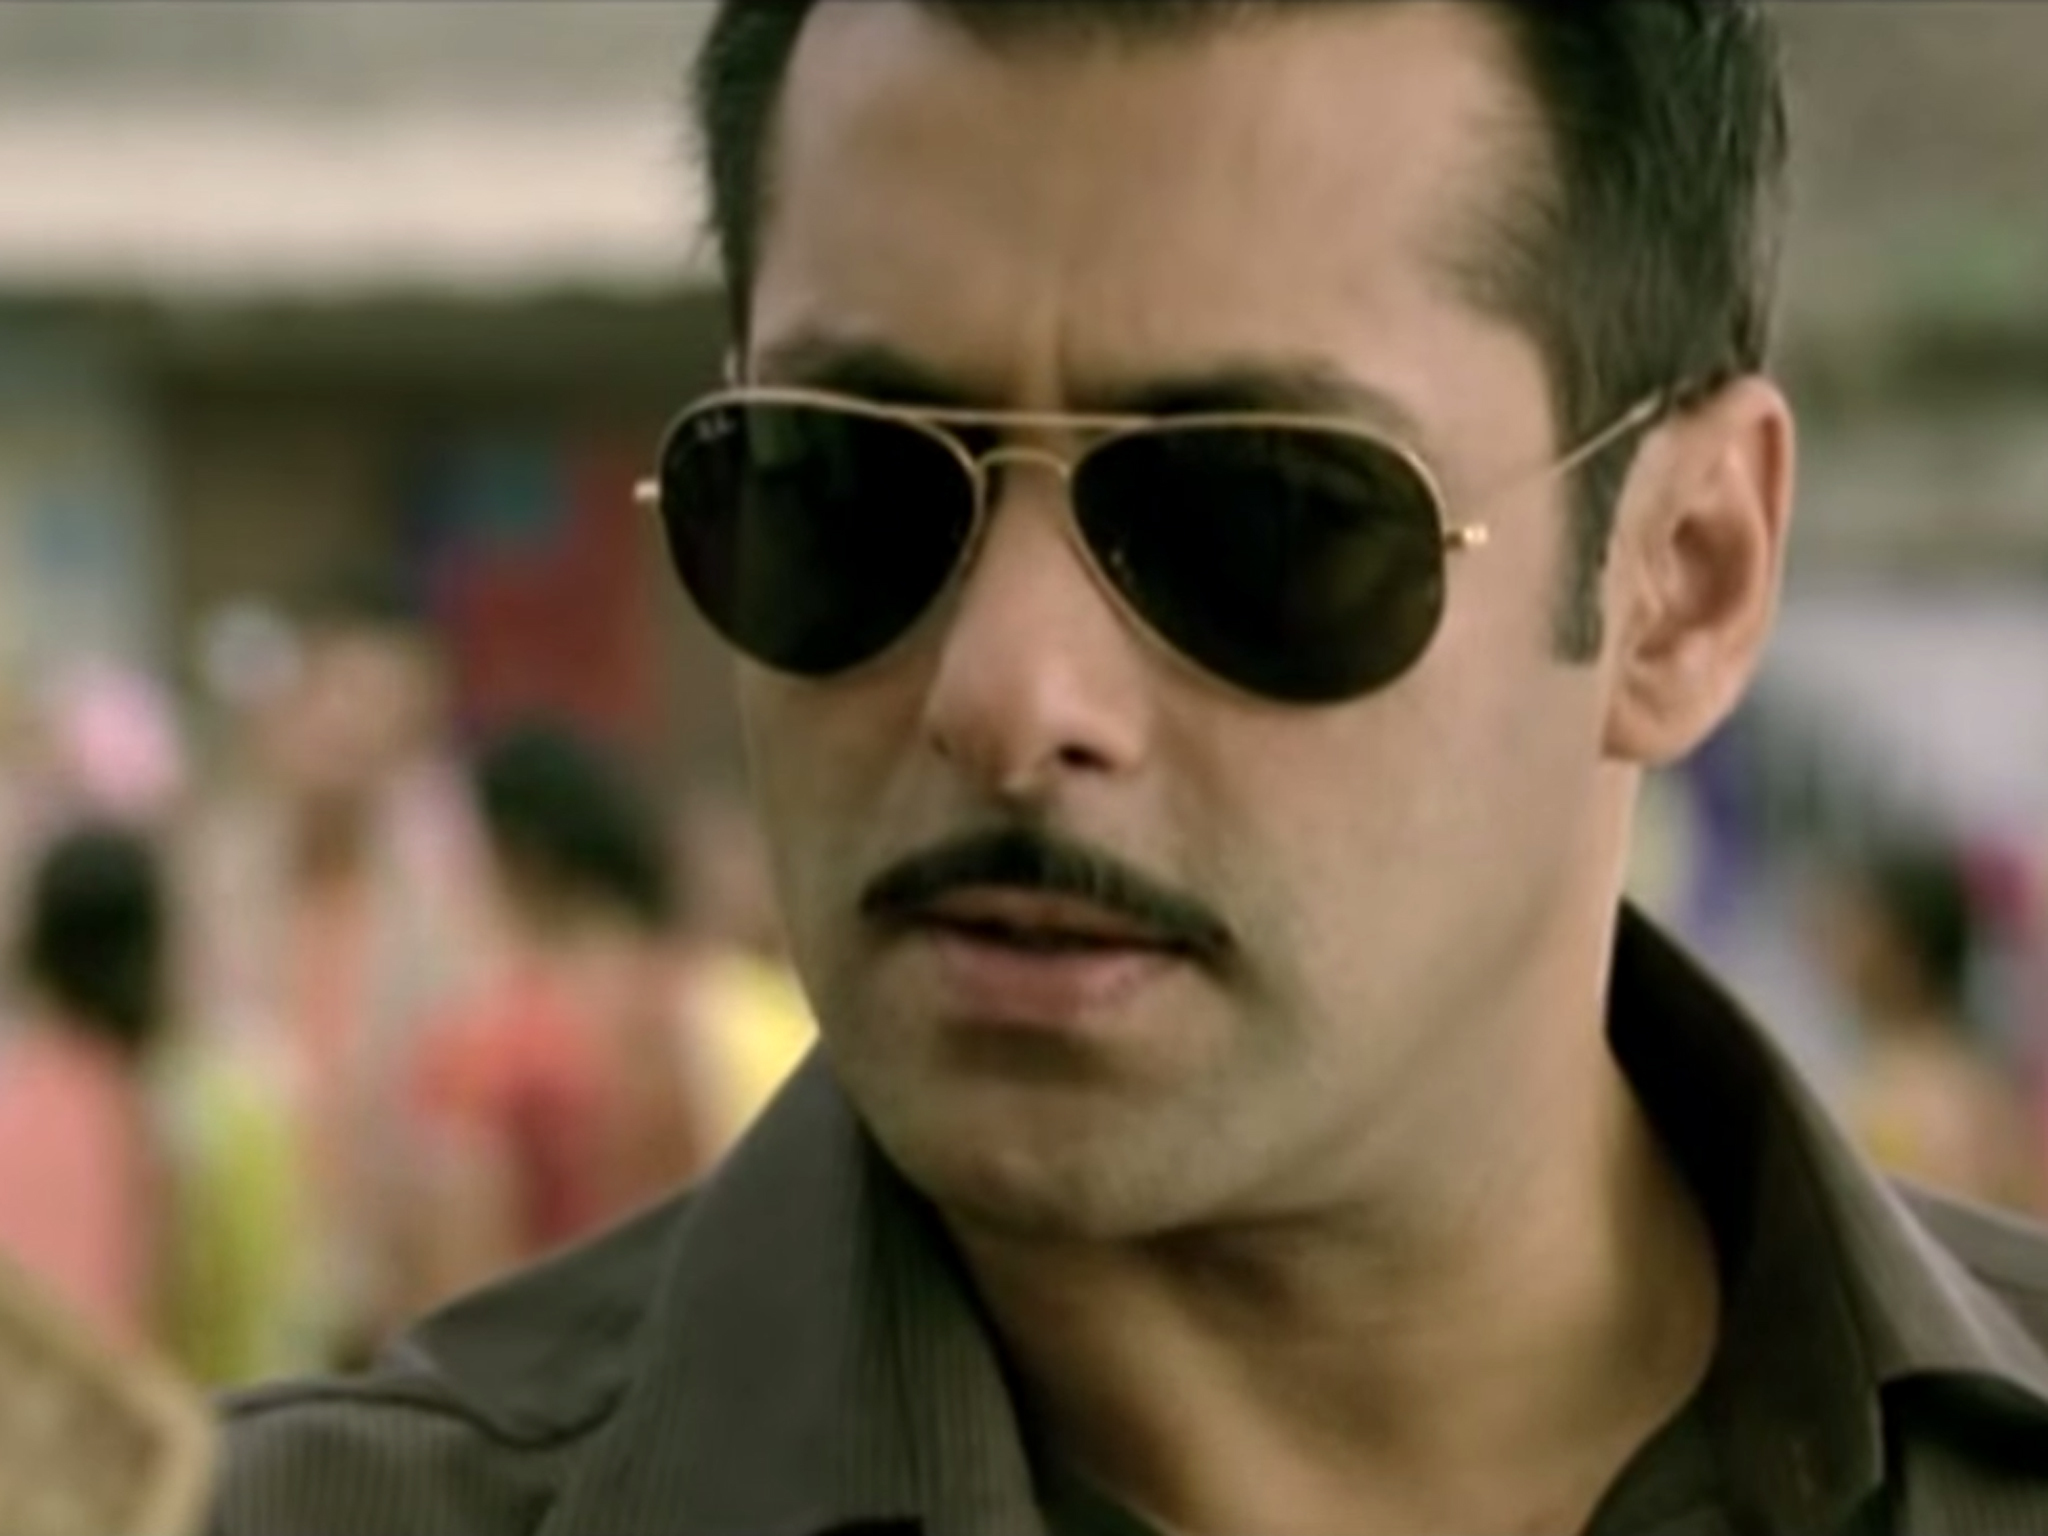 Hindi movie: Dabangg